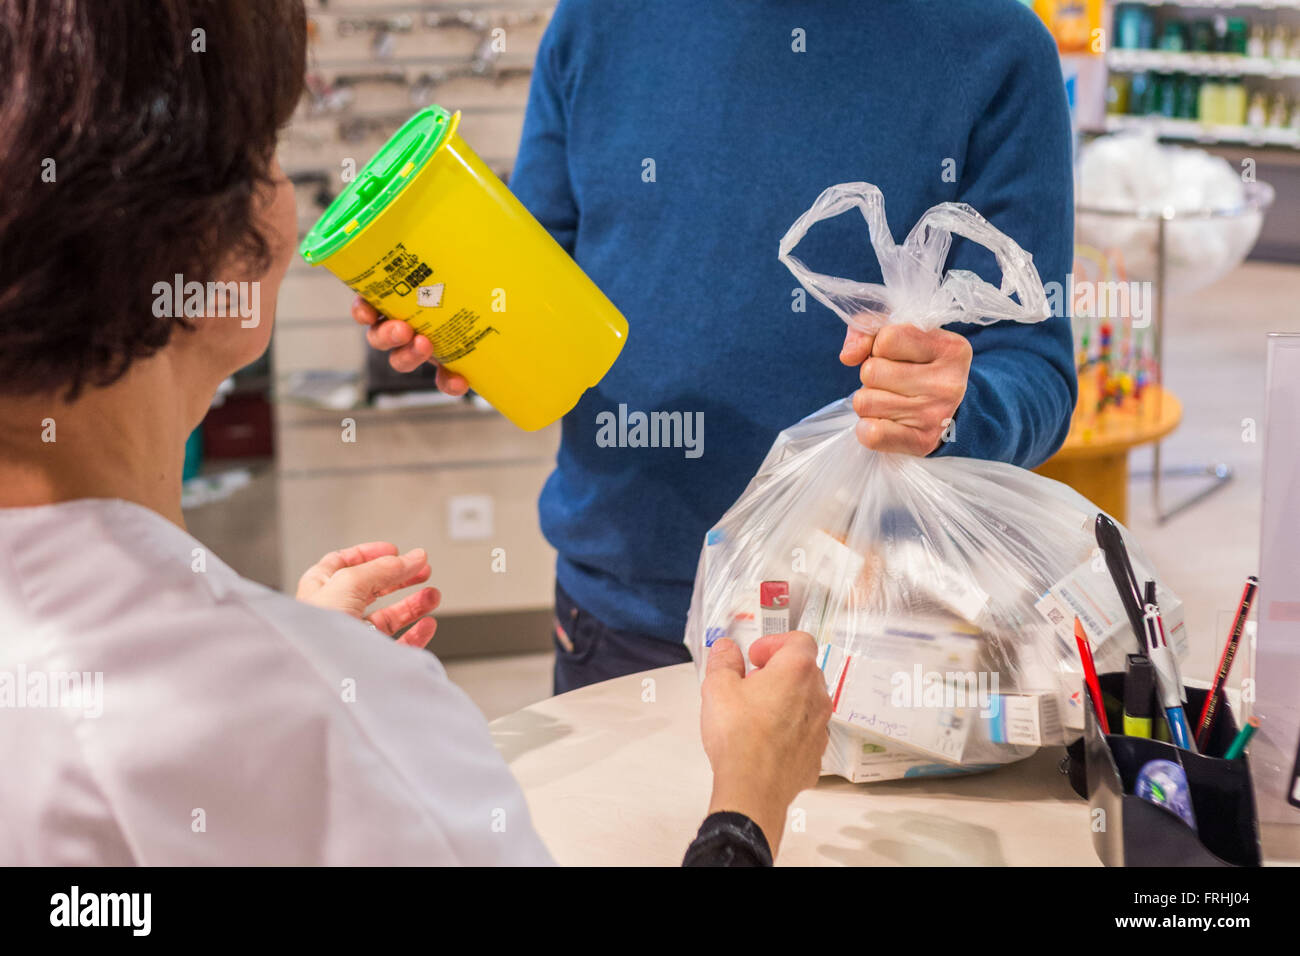 Collection of unused drugs and contaminated sharps disposal. - Stock Image